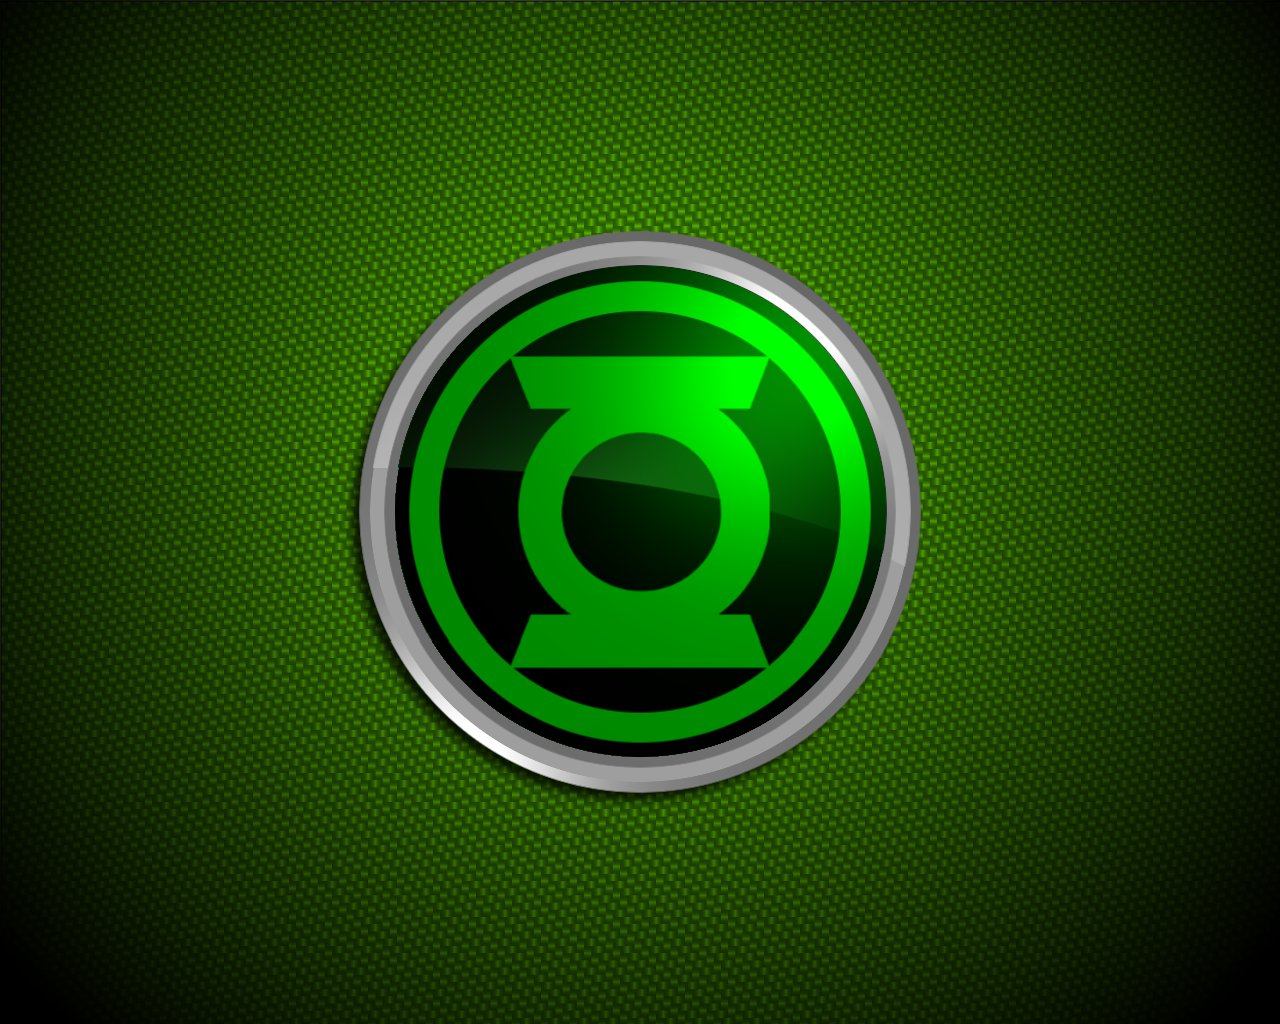 Kelly Blog green lantern wallpaper hd 1280x1024